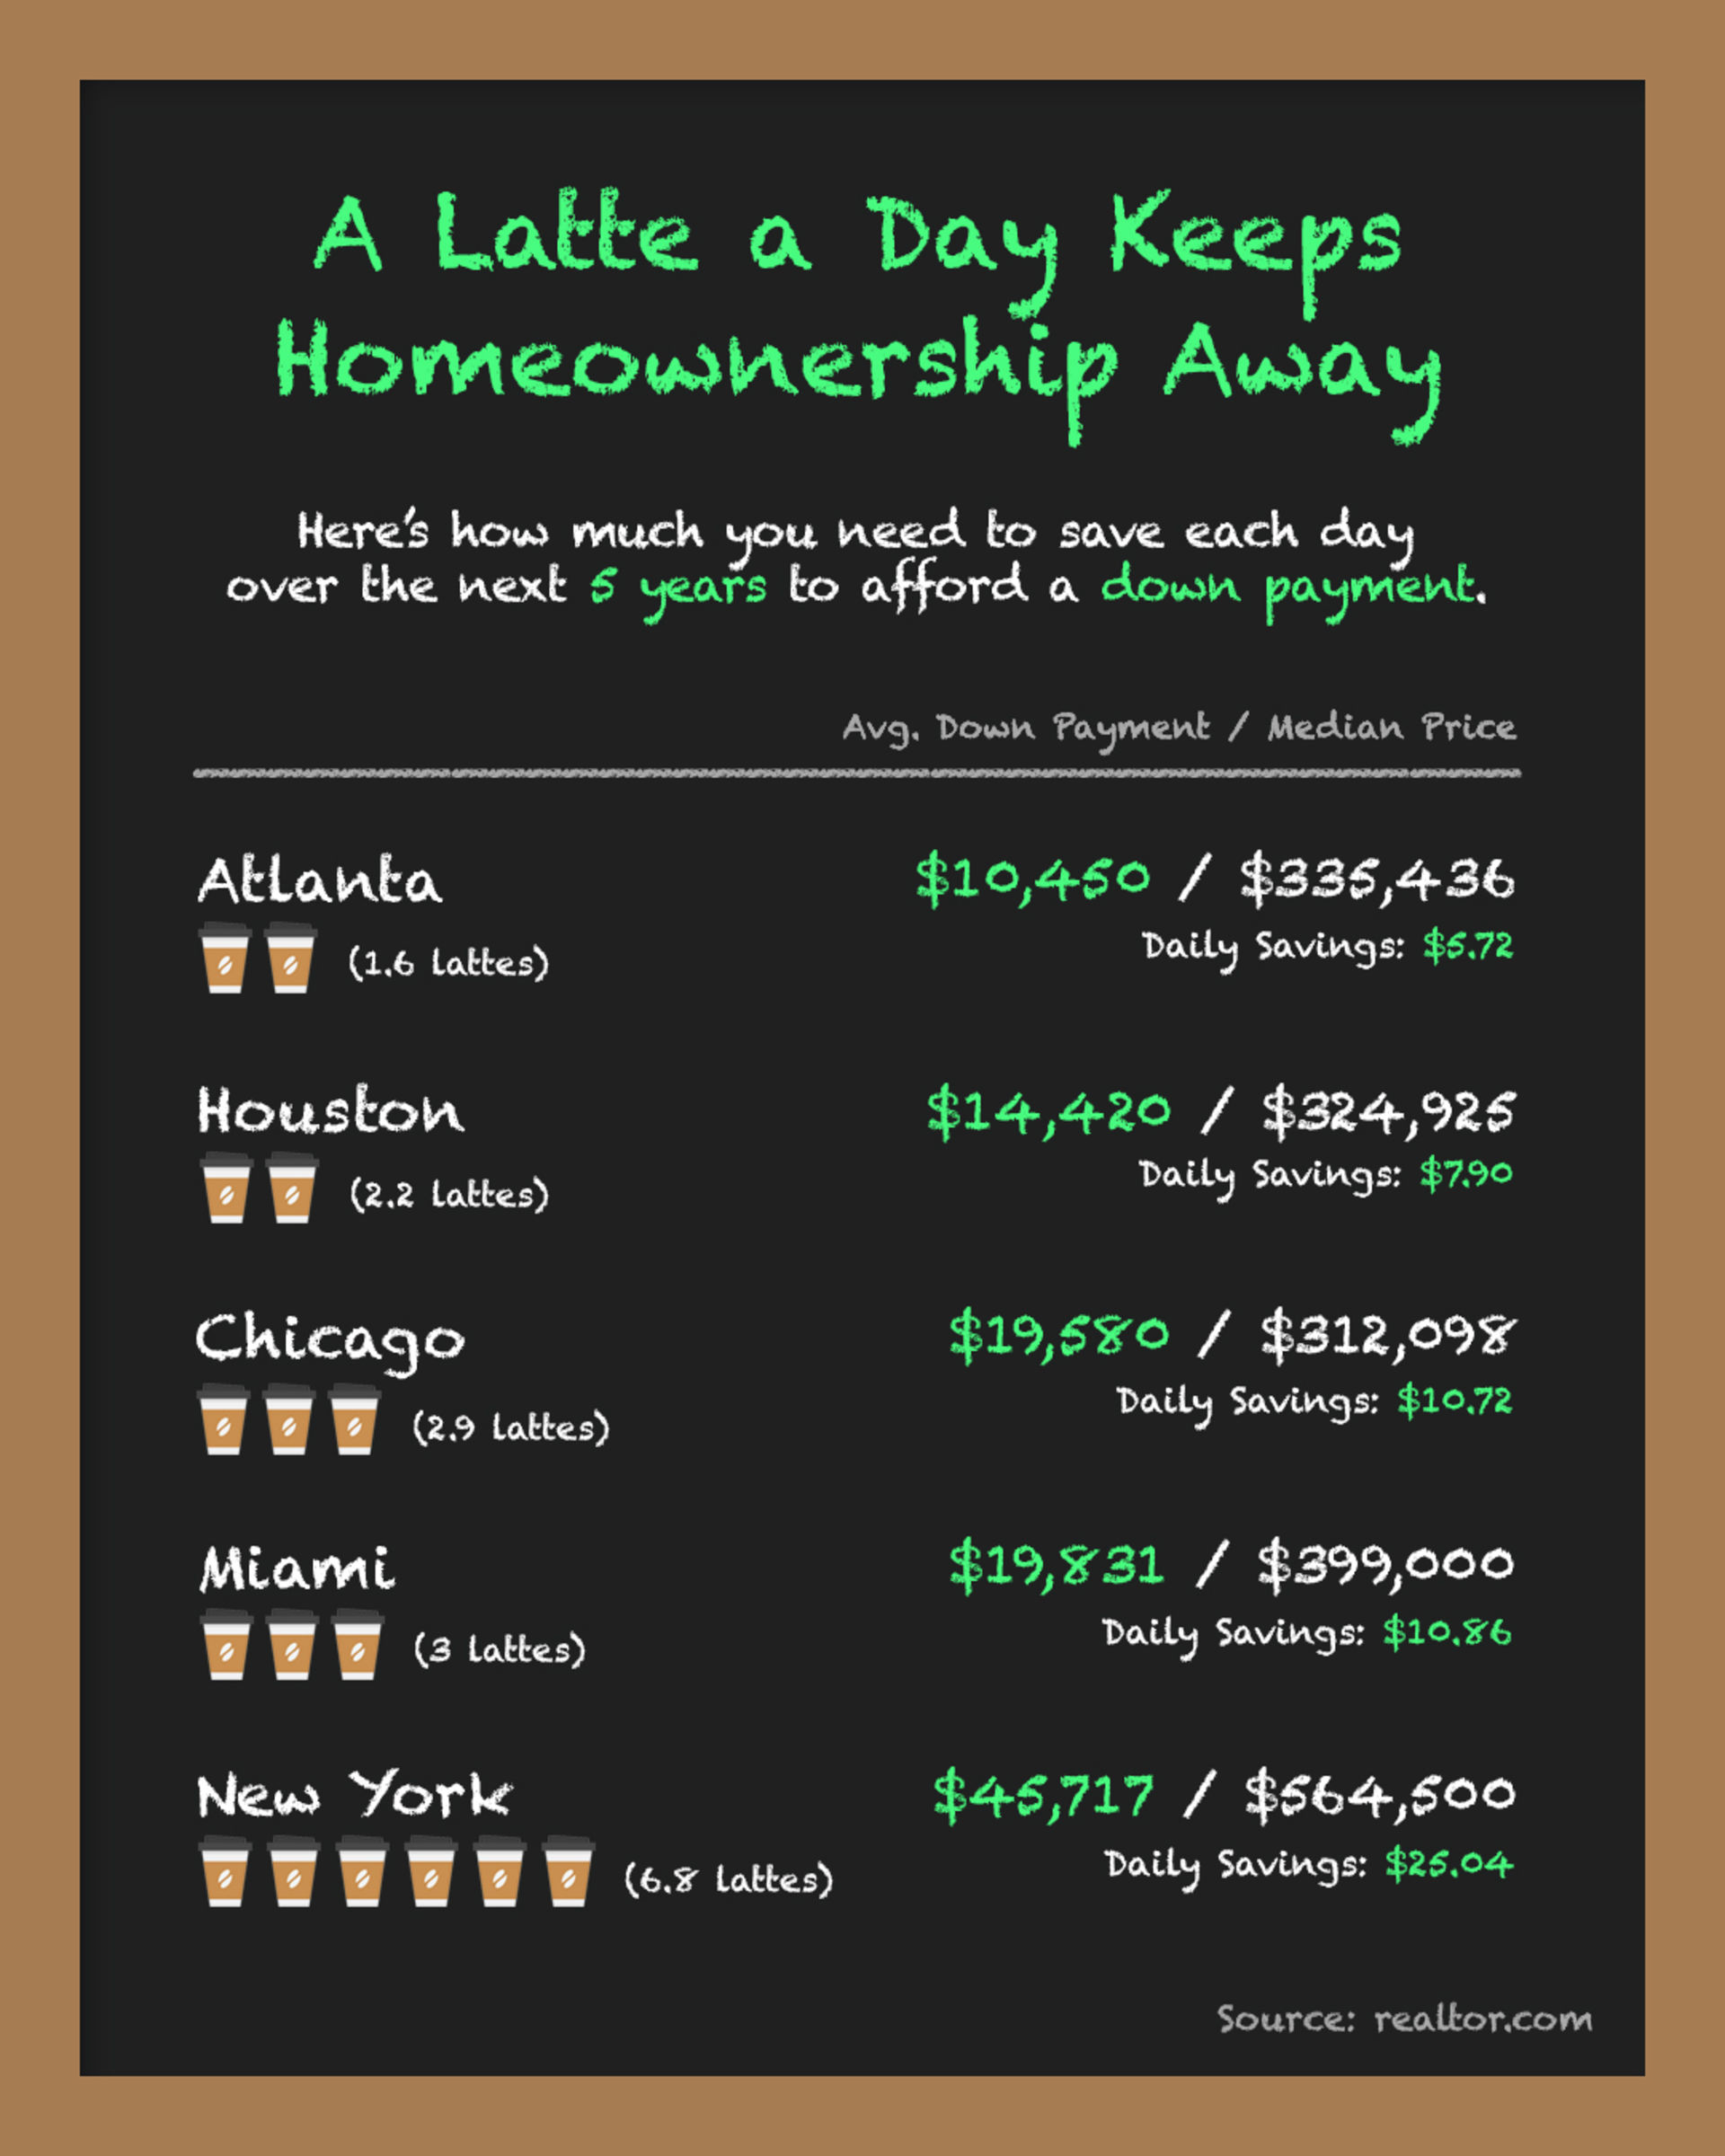 A Latte A Day Keeps the Homeownership Away